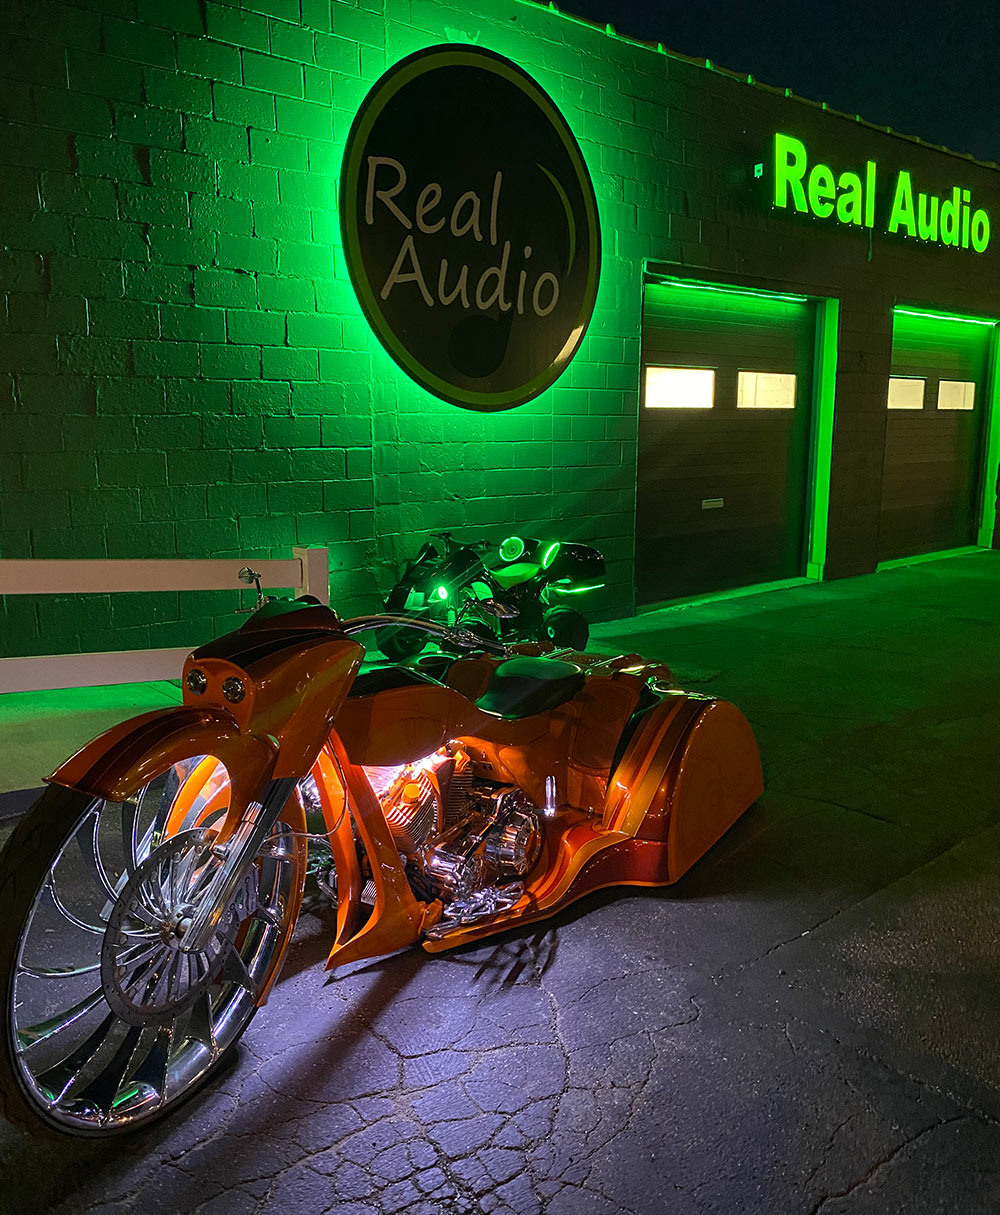 Photo of a custom trike in front of Real Audio shop at night